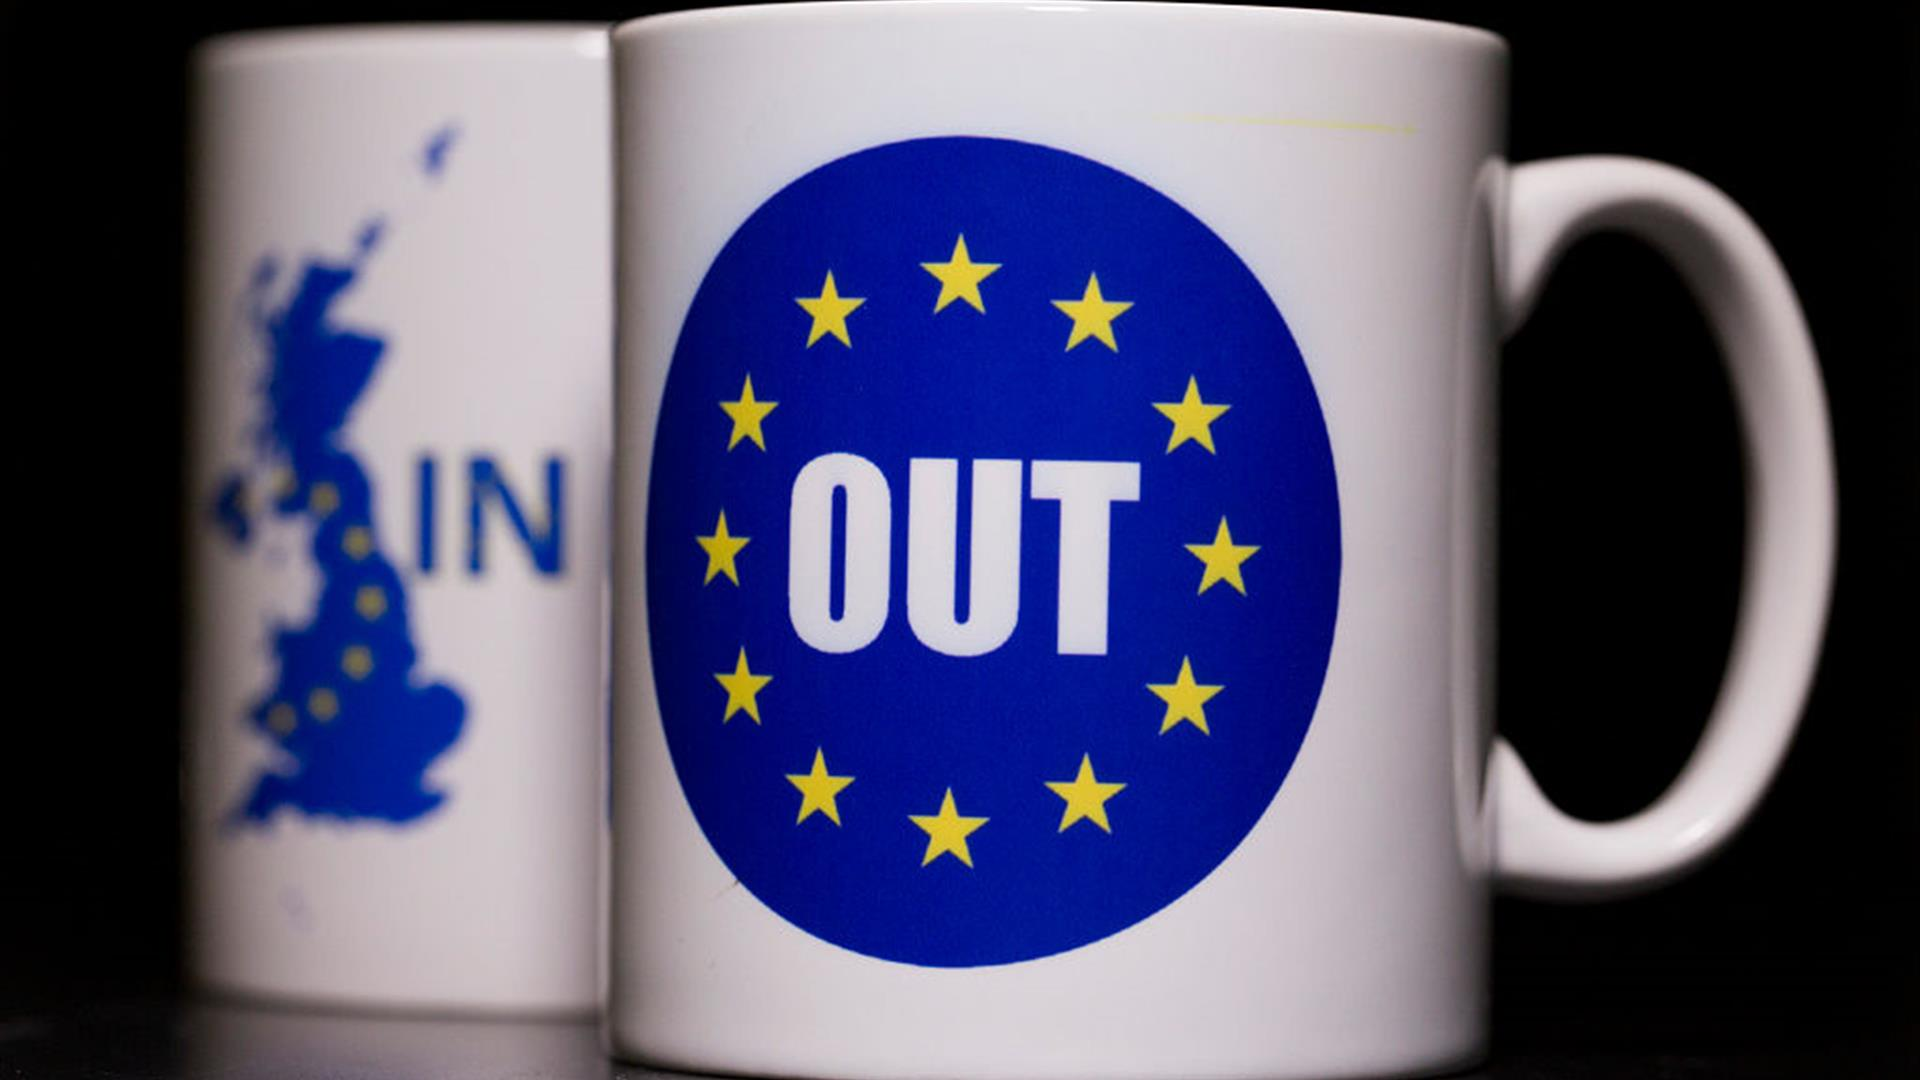 Brexit in out mug cup tazze